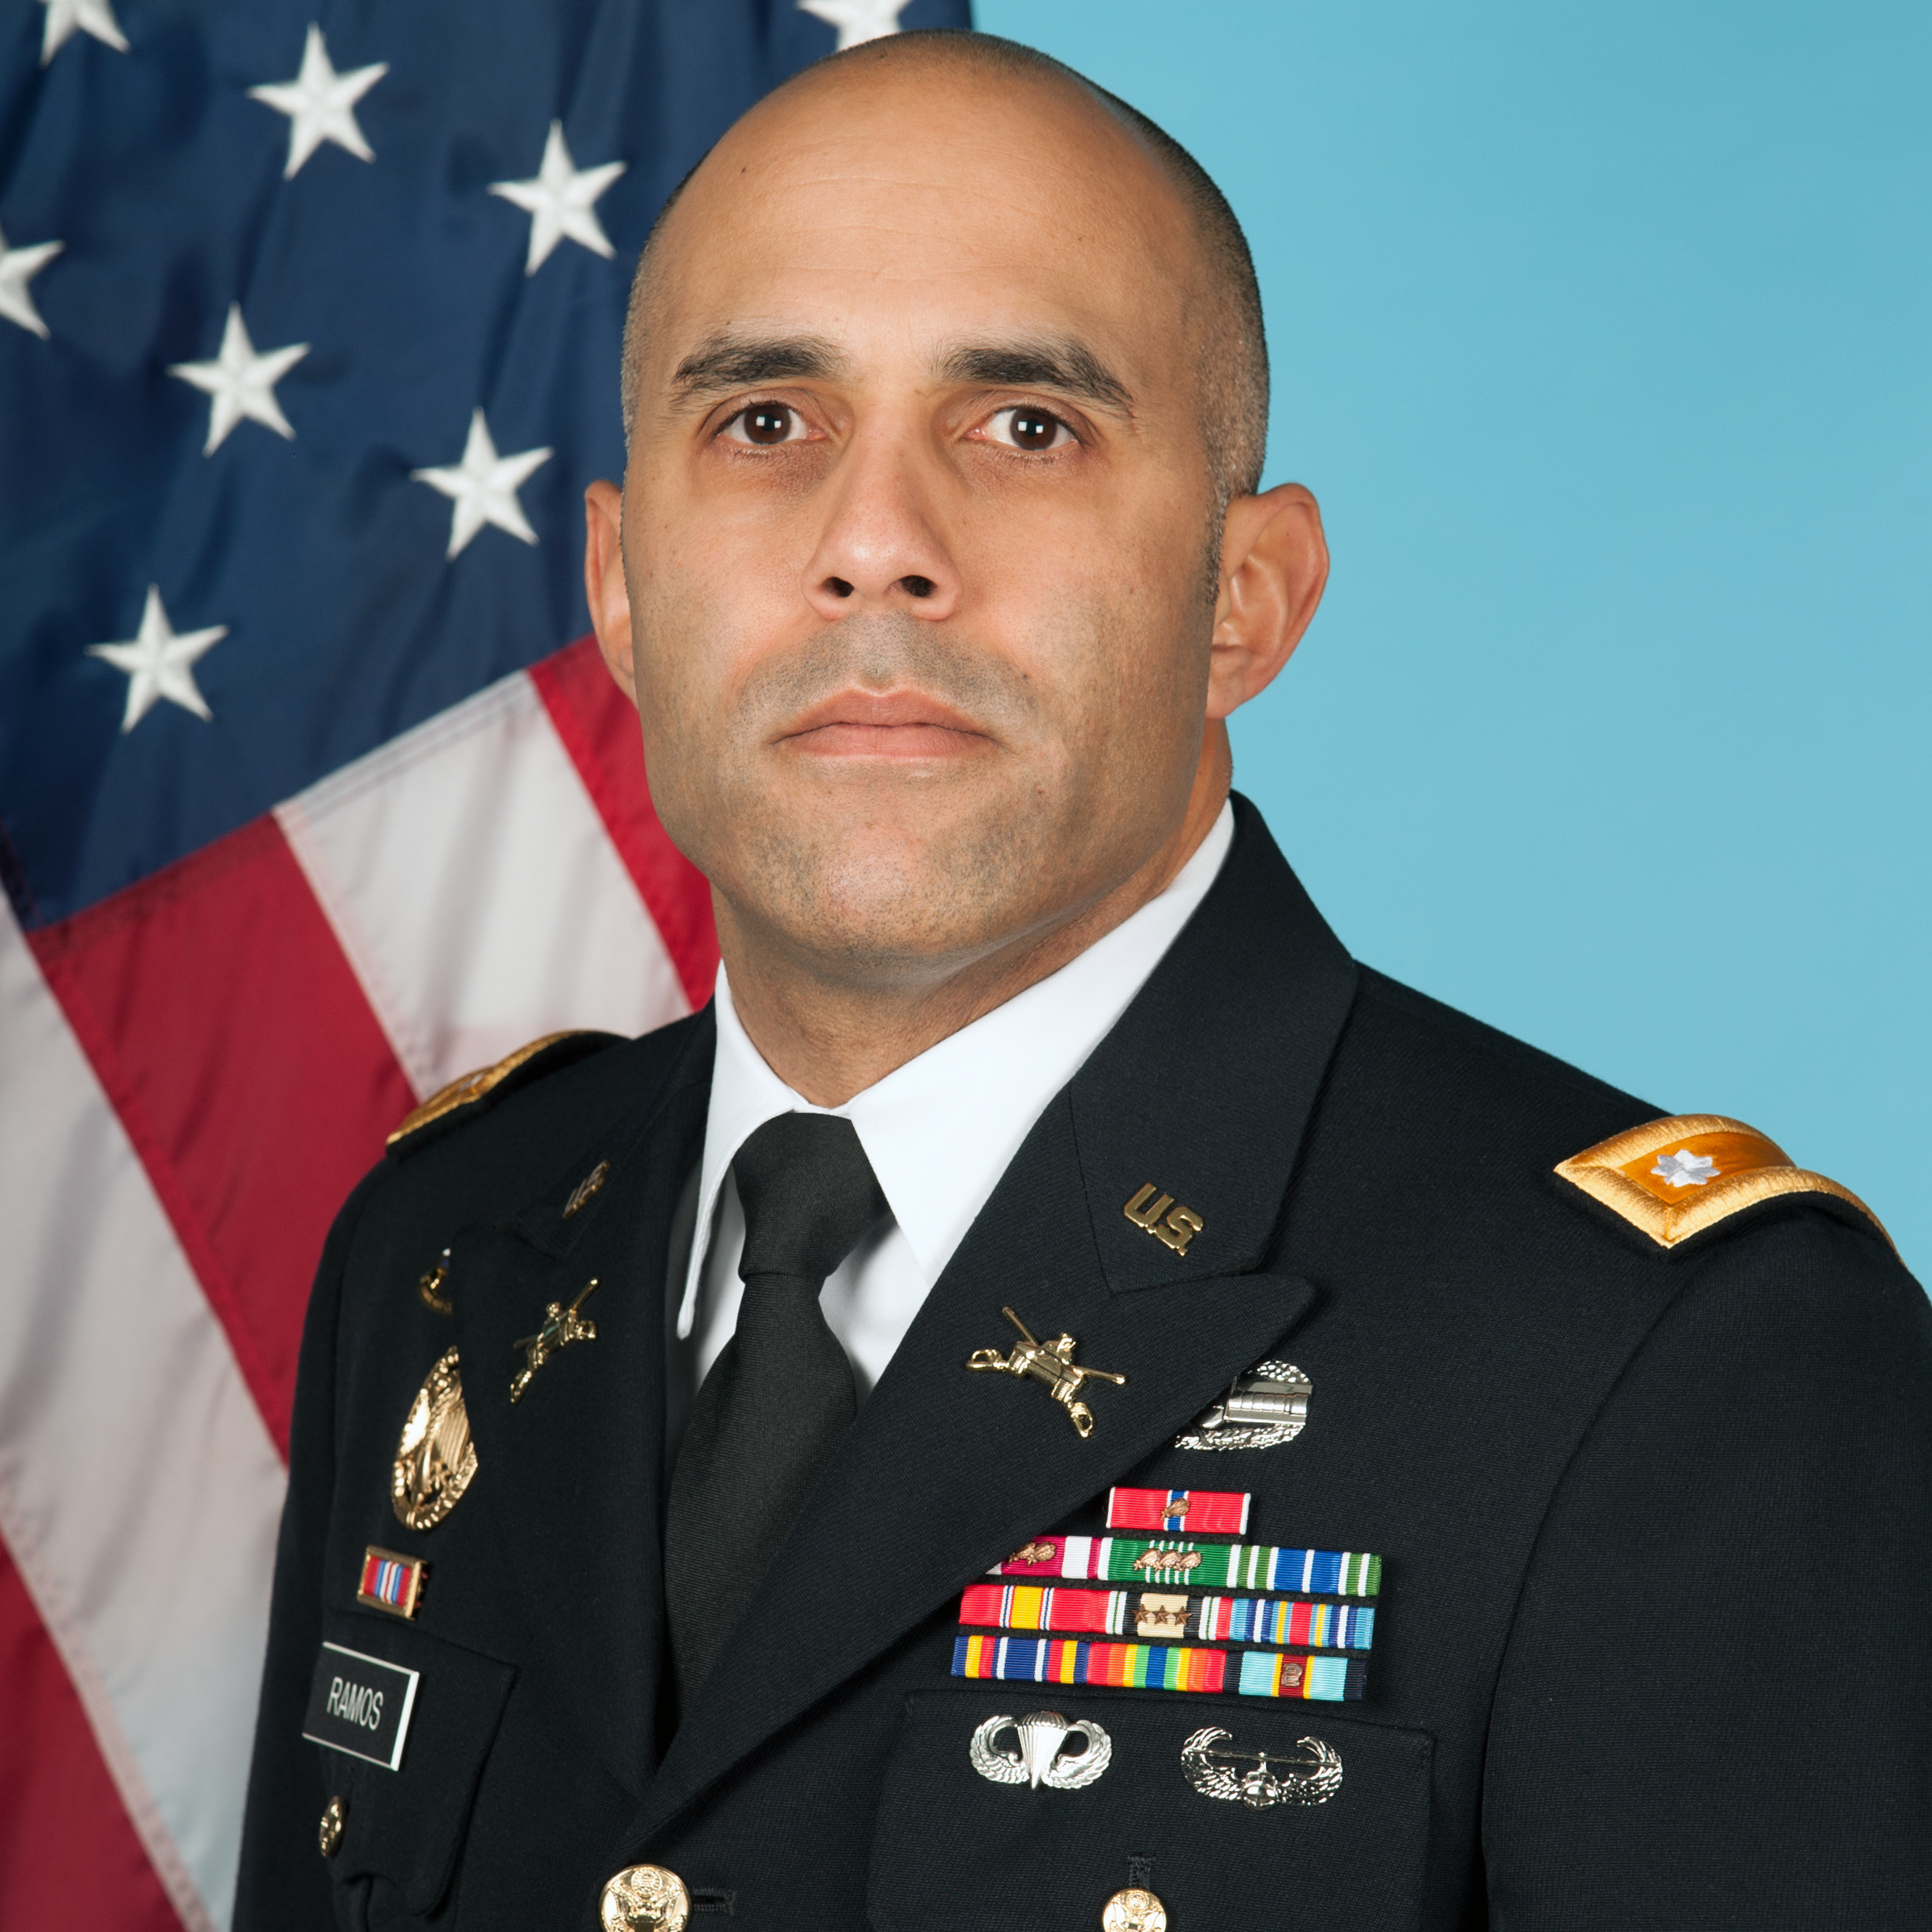 Lt.Col. Daniel Ramos, Product Manager APS Lead at Stryker, PEO GCS, US Army